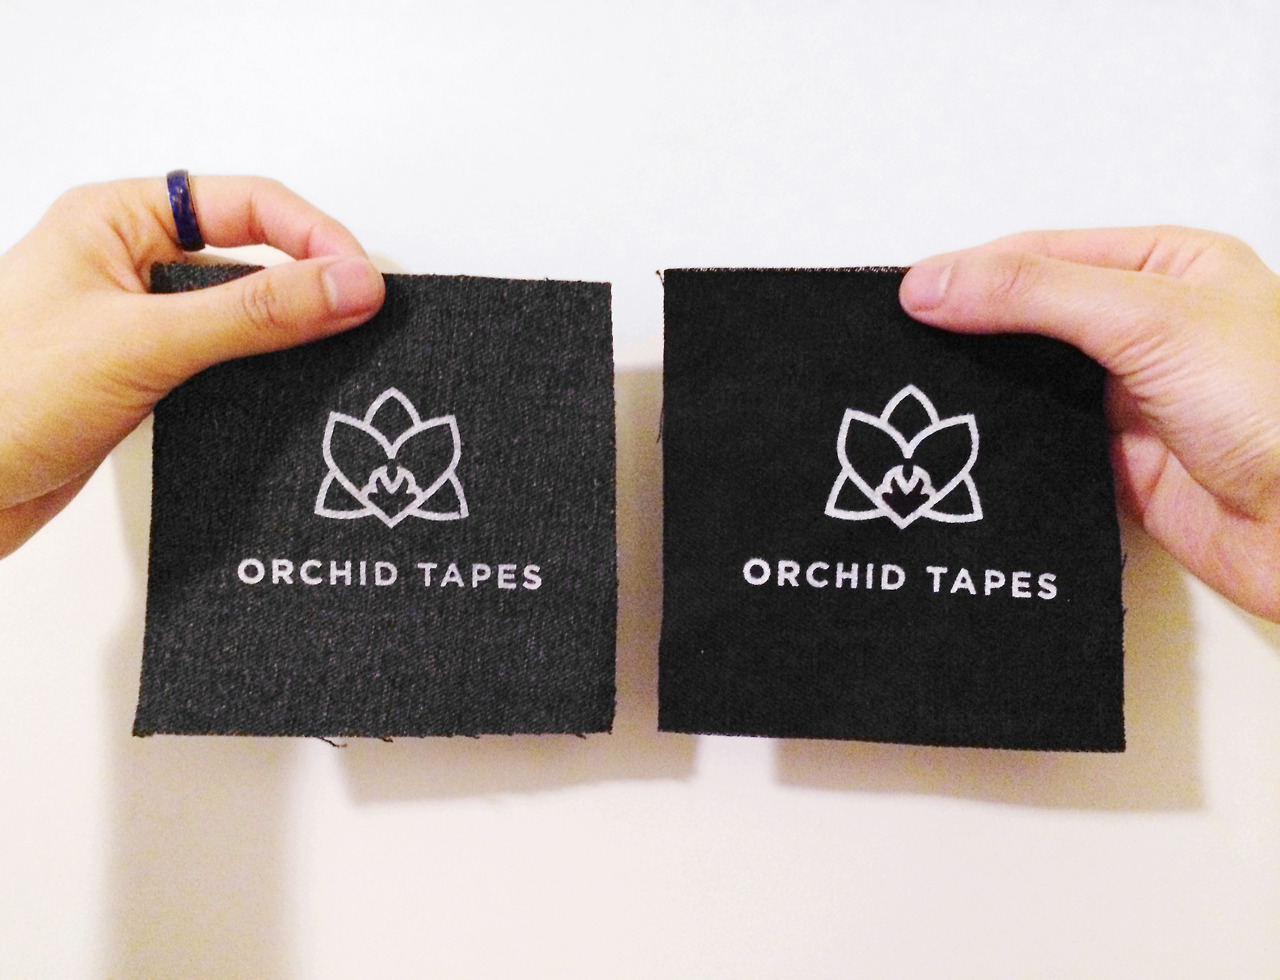 Orchid Tapes